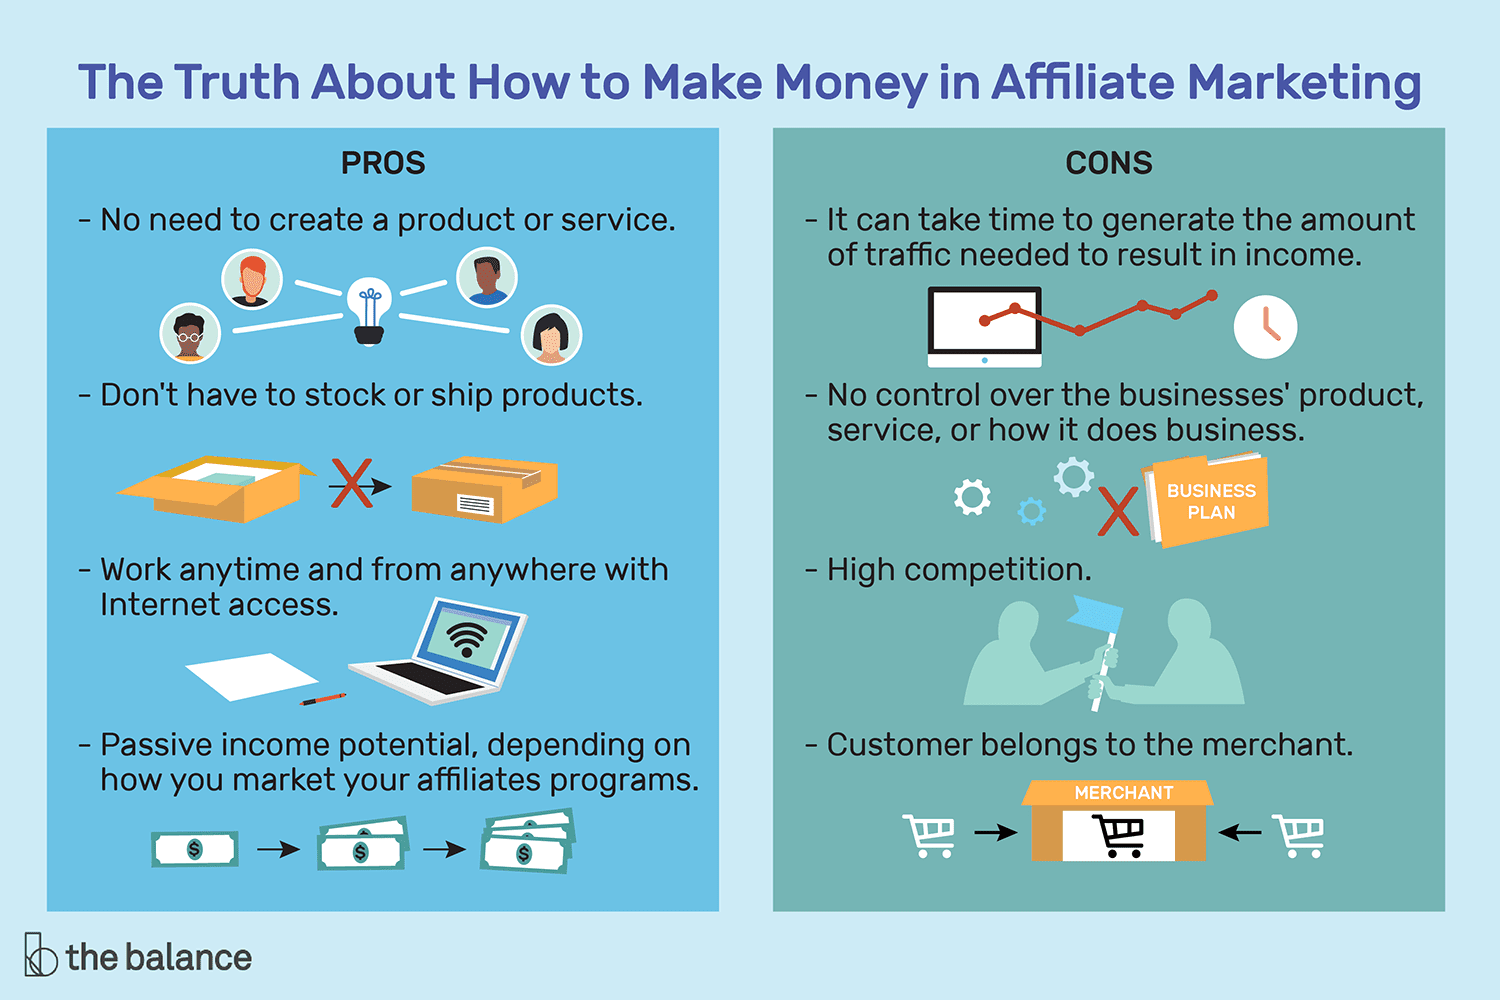 Pros and cons of the affiliate marketing